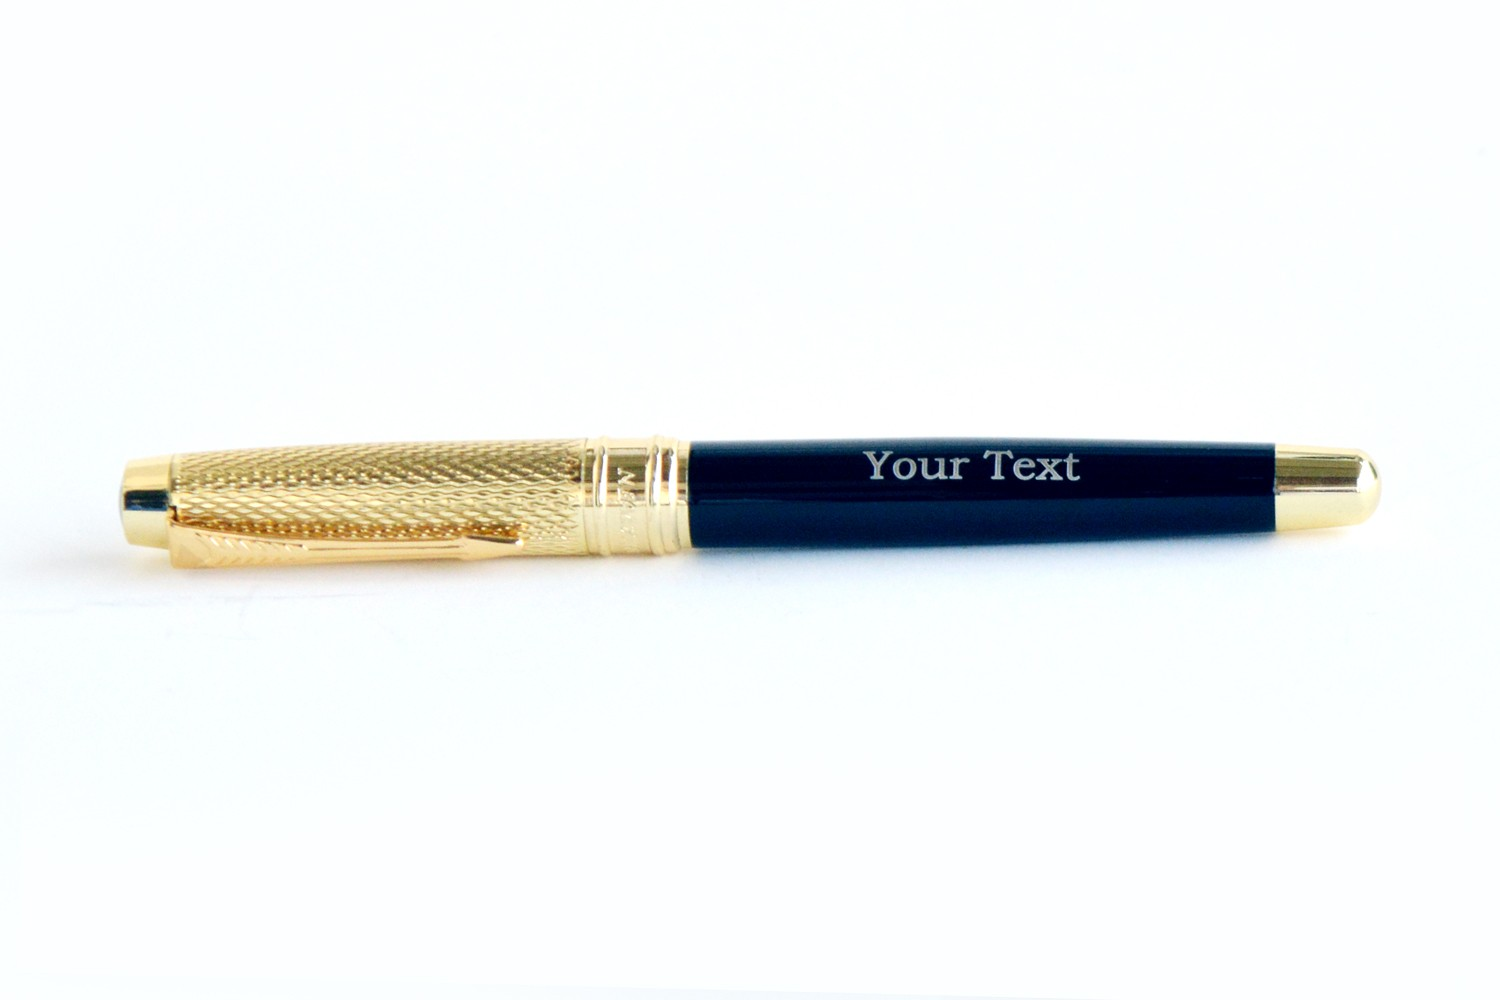 Scabrid Gold Raven Personalised Pen